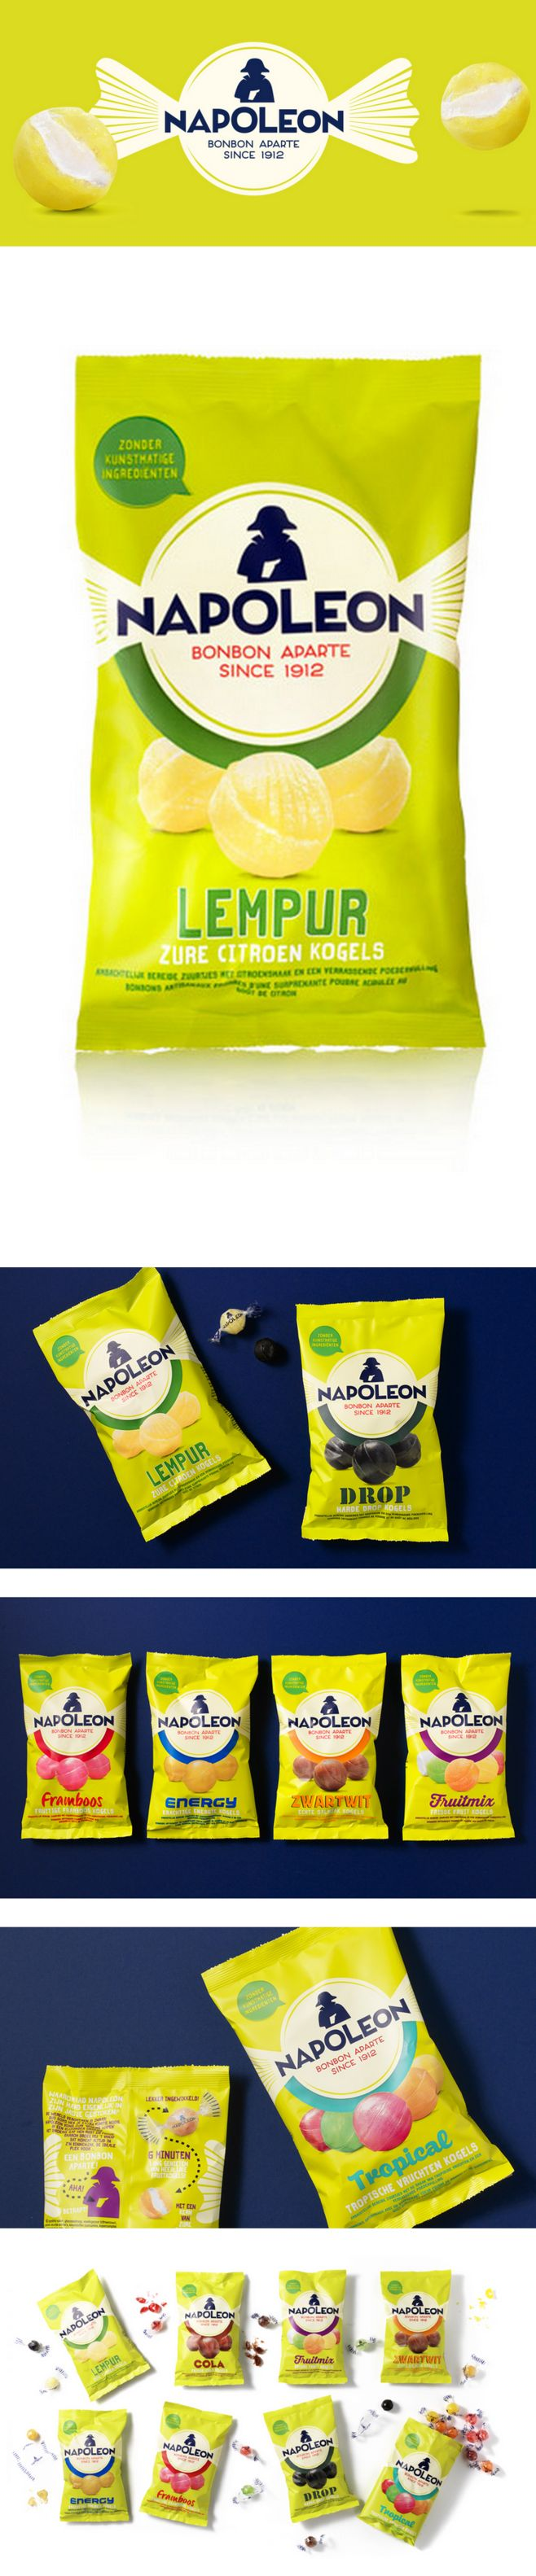 NAPOLEON snack packaging